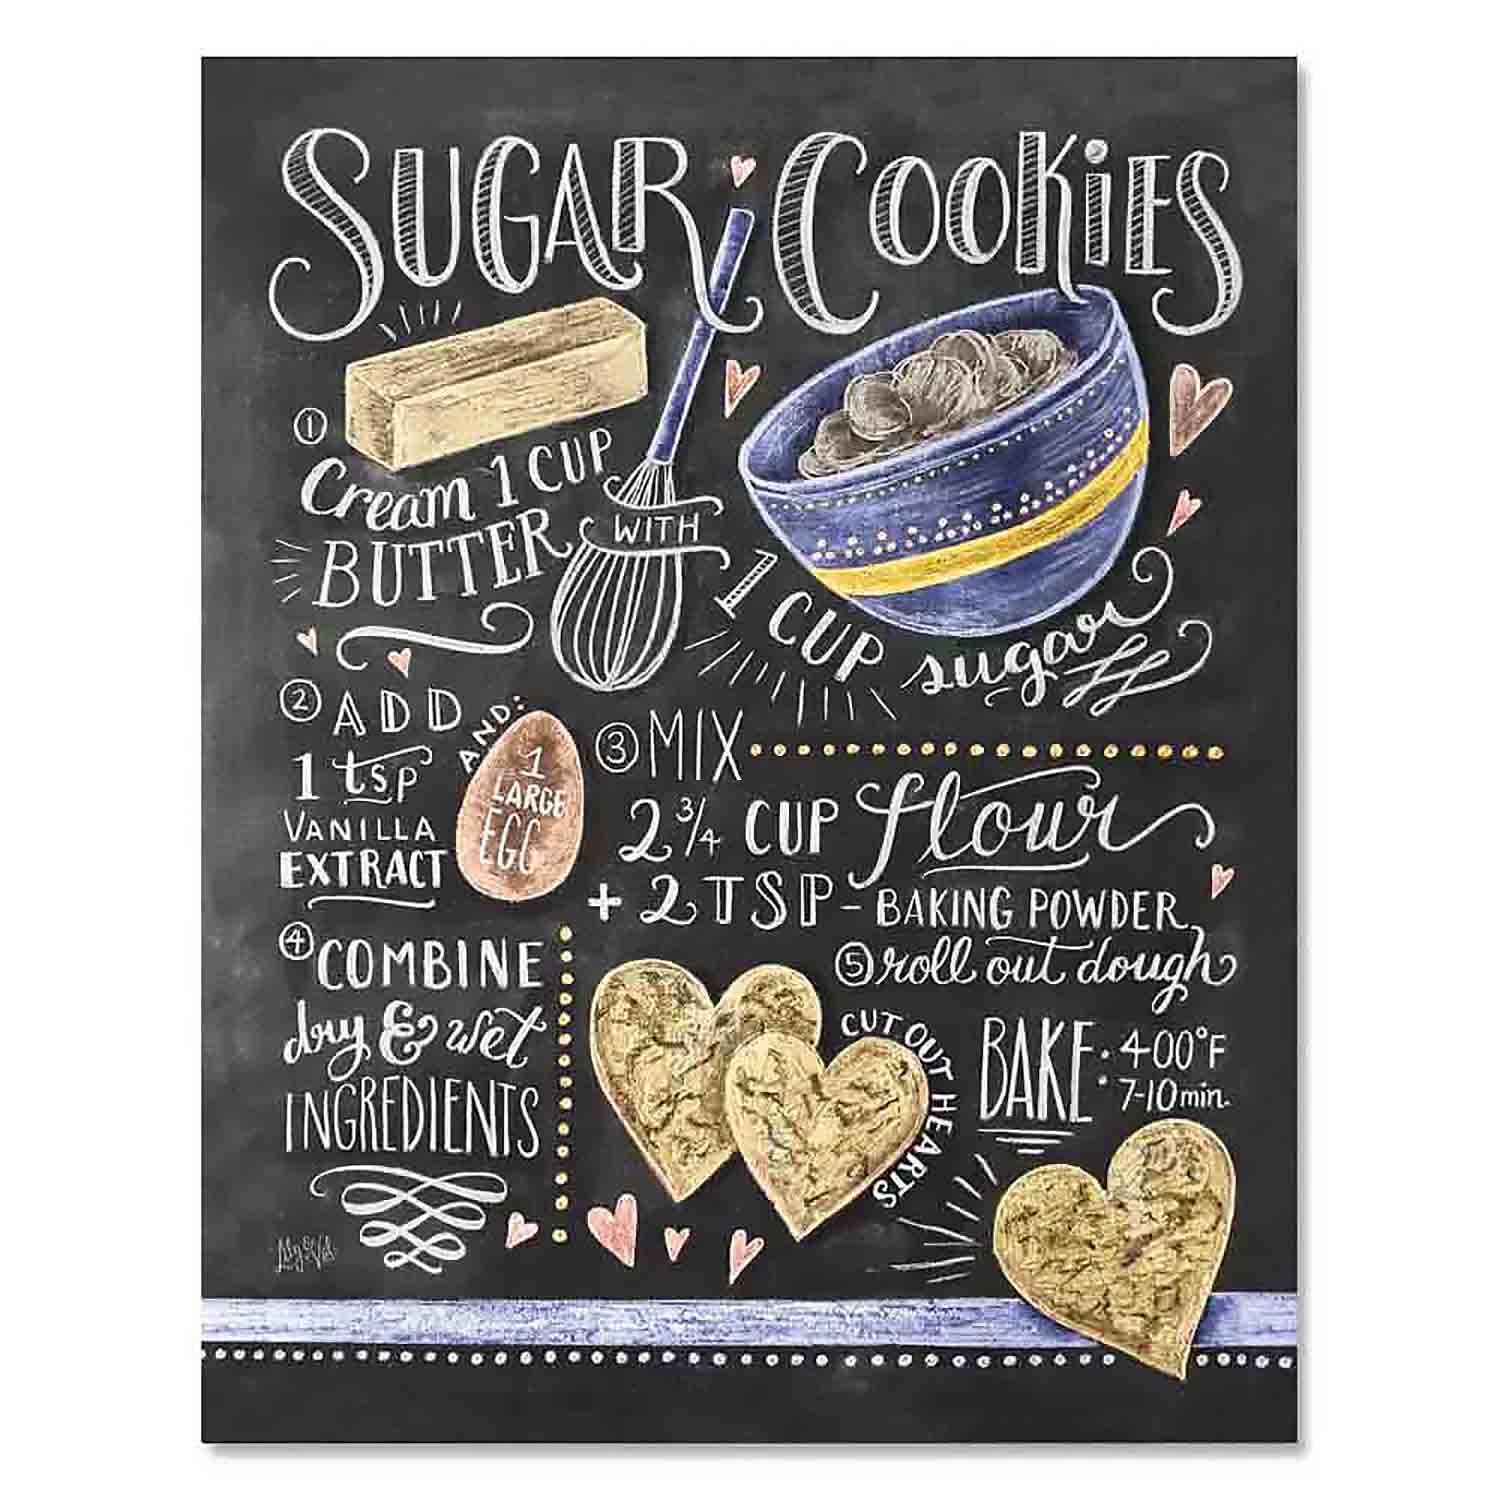 Sugar Cookie Recipe - Print